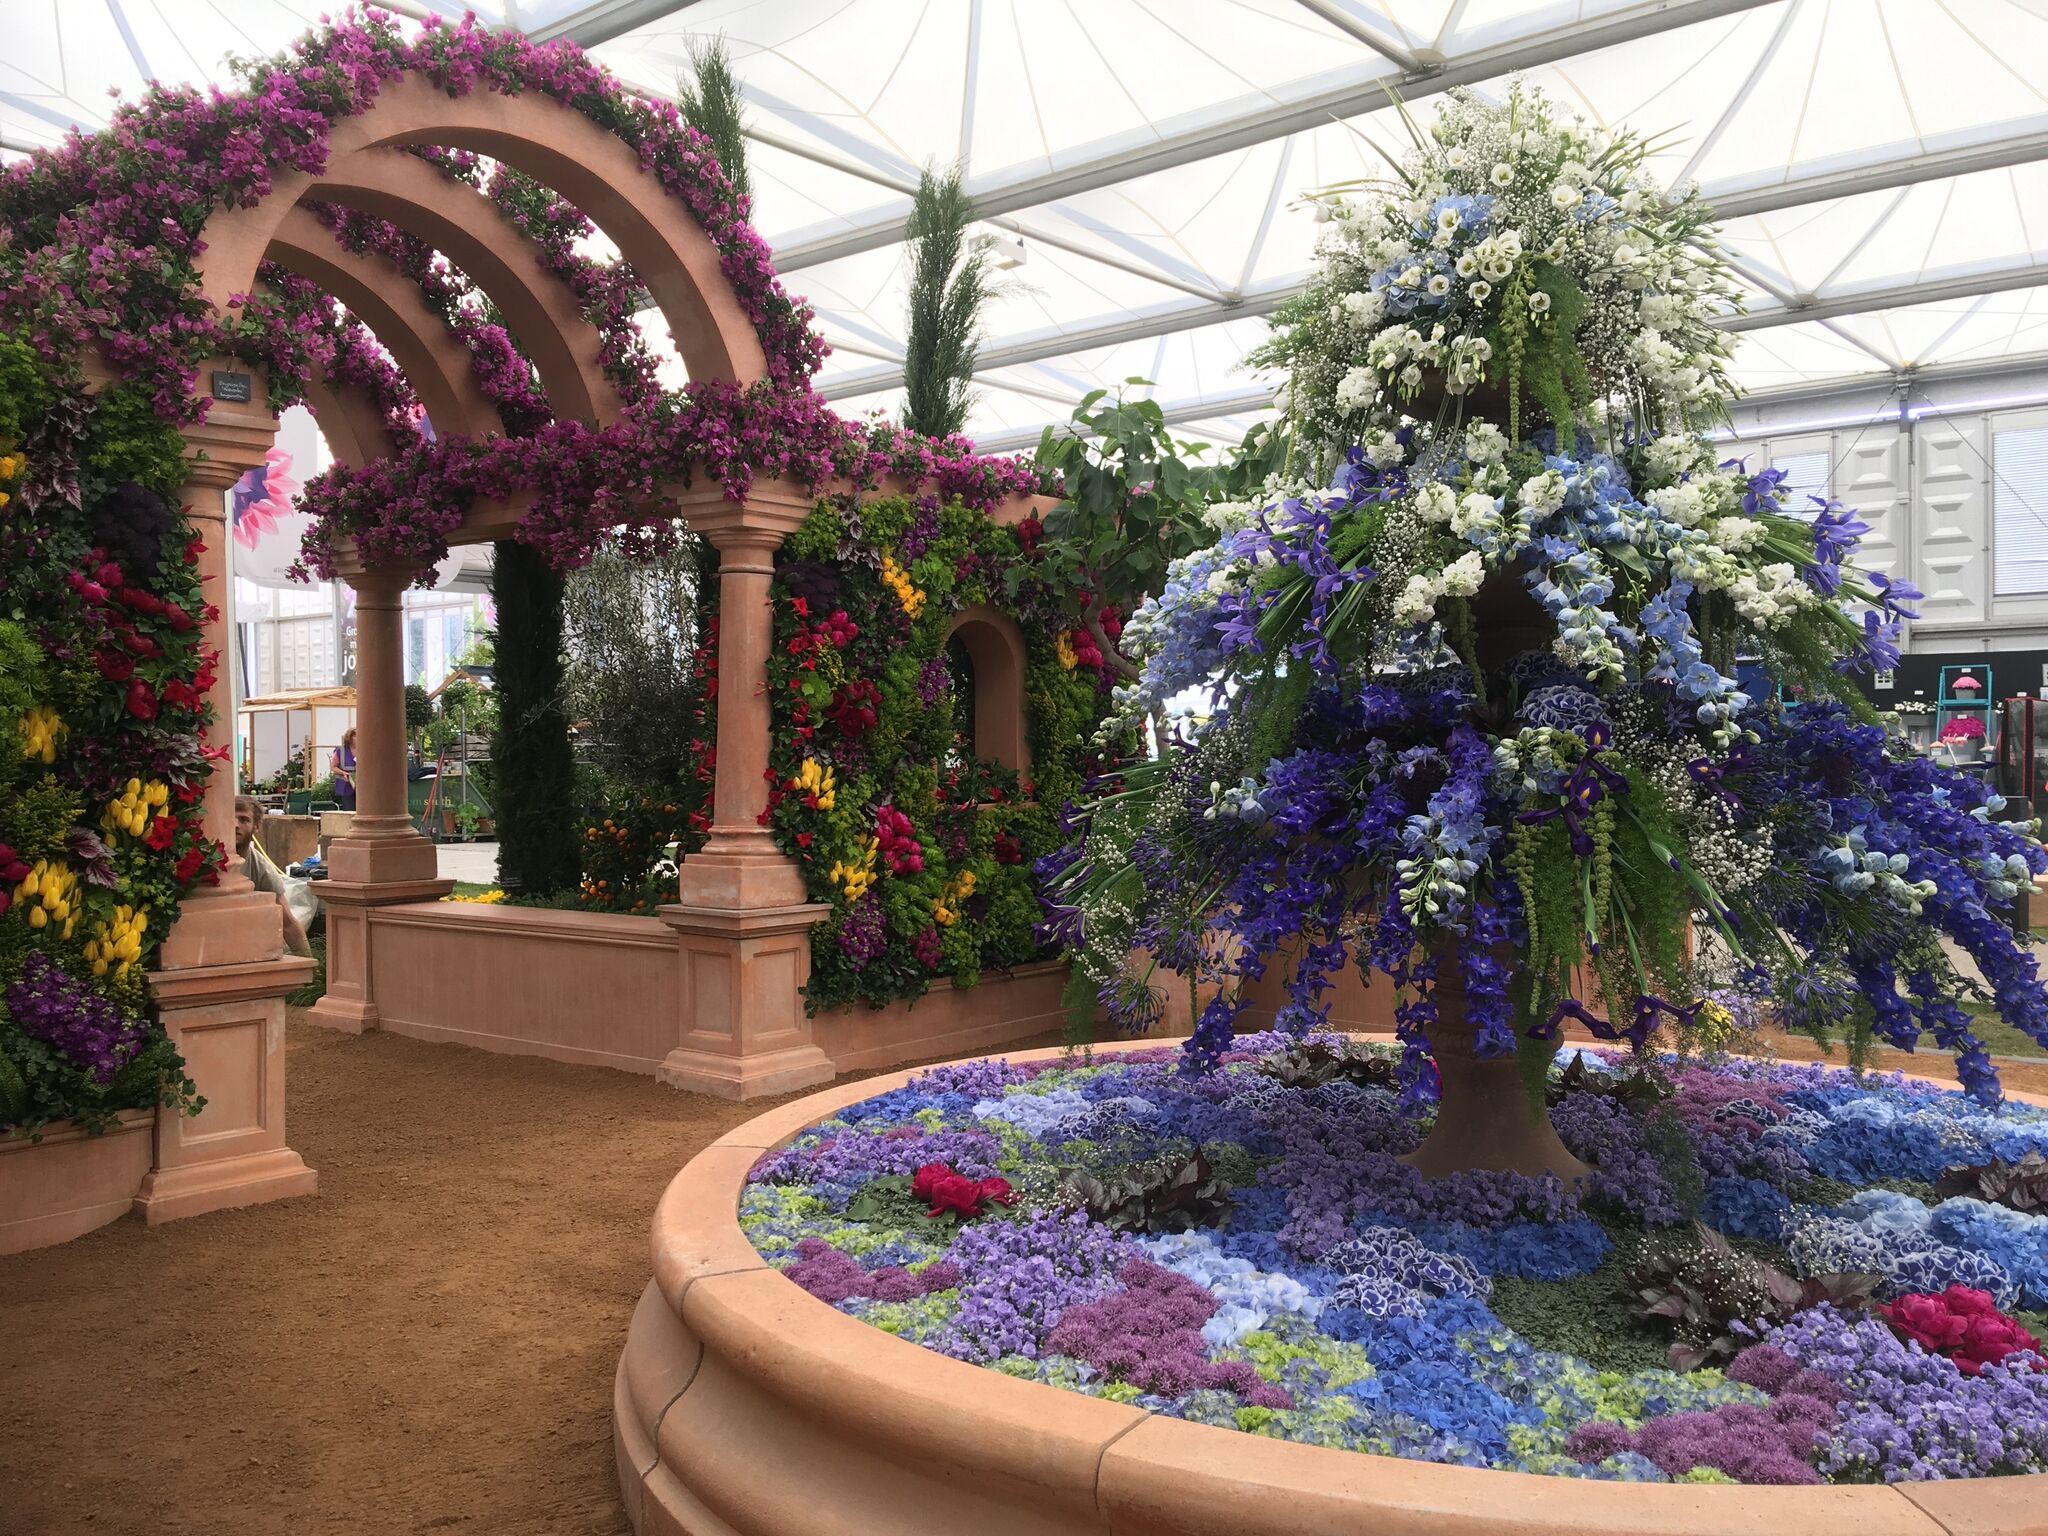 Chelsea flower show 2017 corporate entertainment packages - 05 06 2017